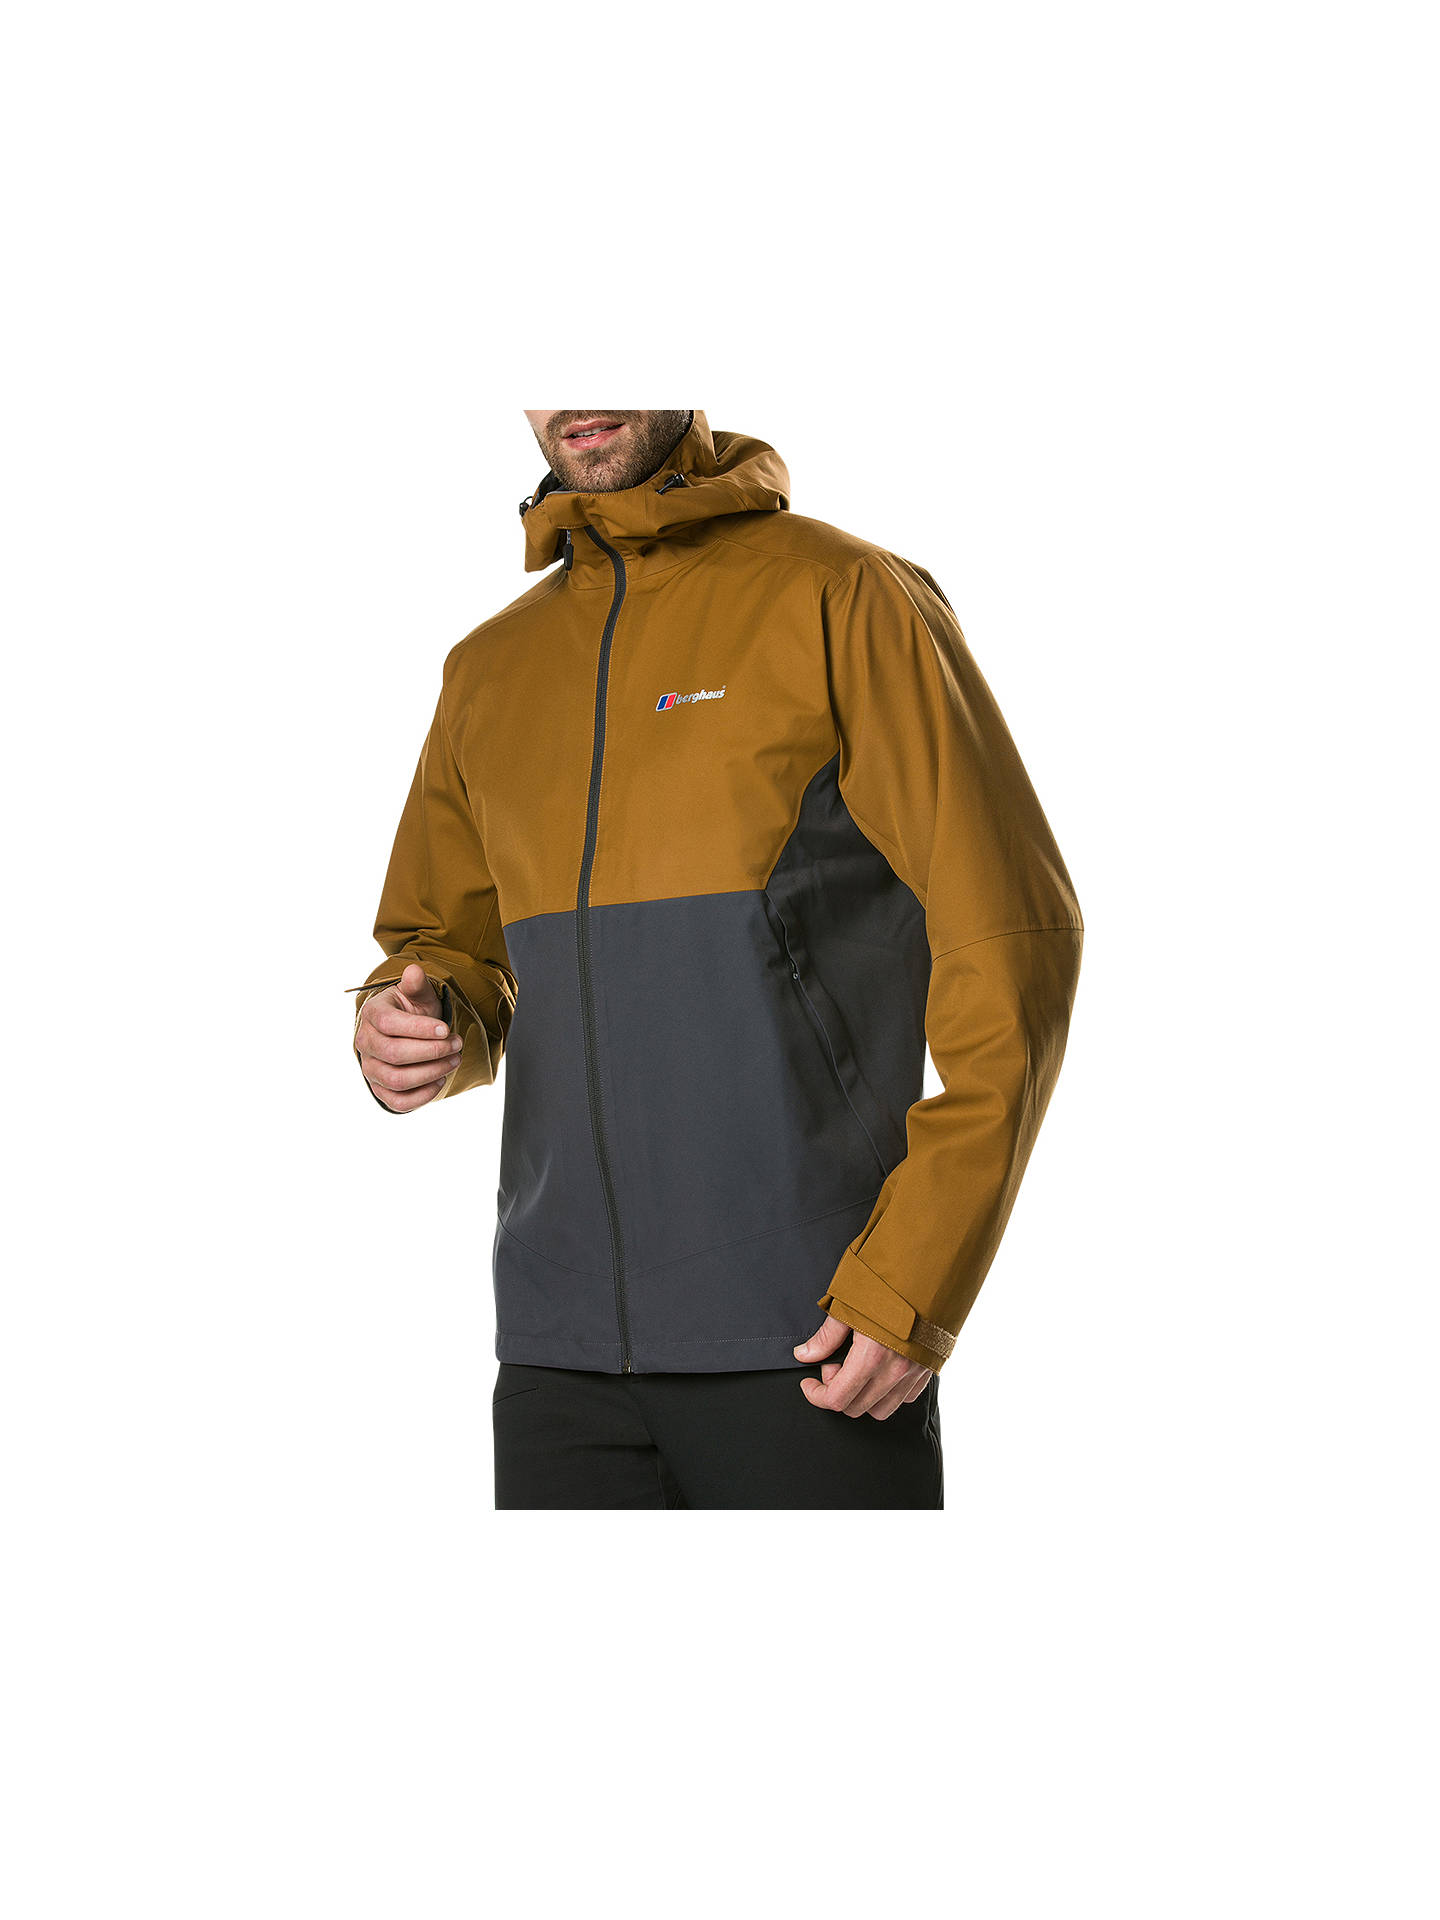 BuyBerghaus Fellmaster Men's Jacket, Black/Brown, S Online at johnlewis.com